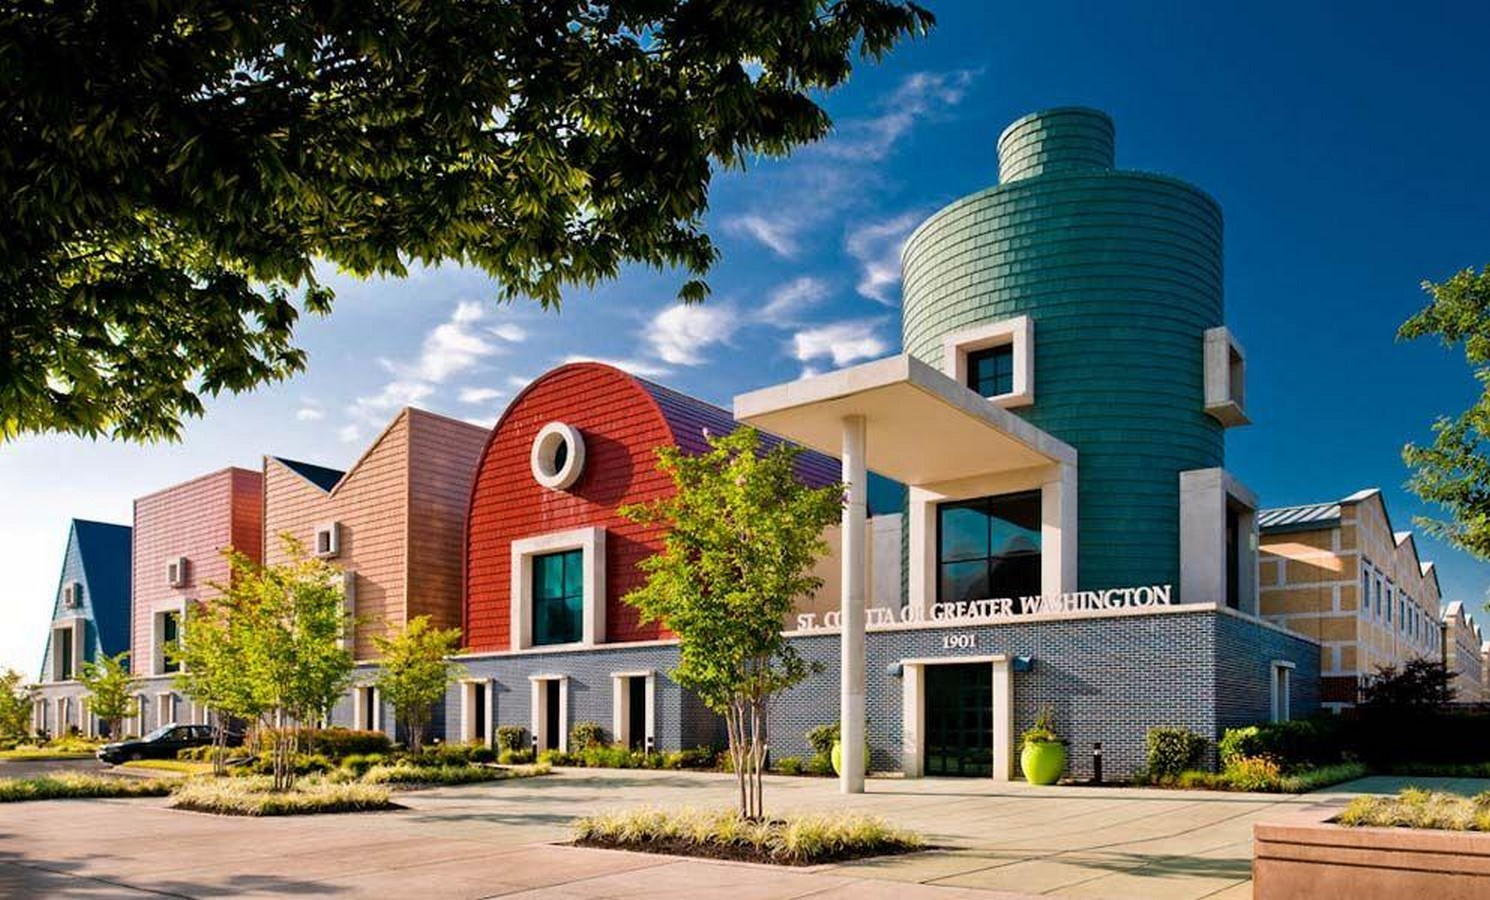 Use of Colour in Architecture and Urban Design - Sheet5